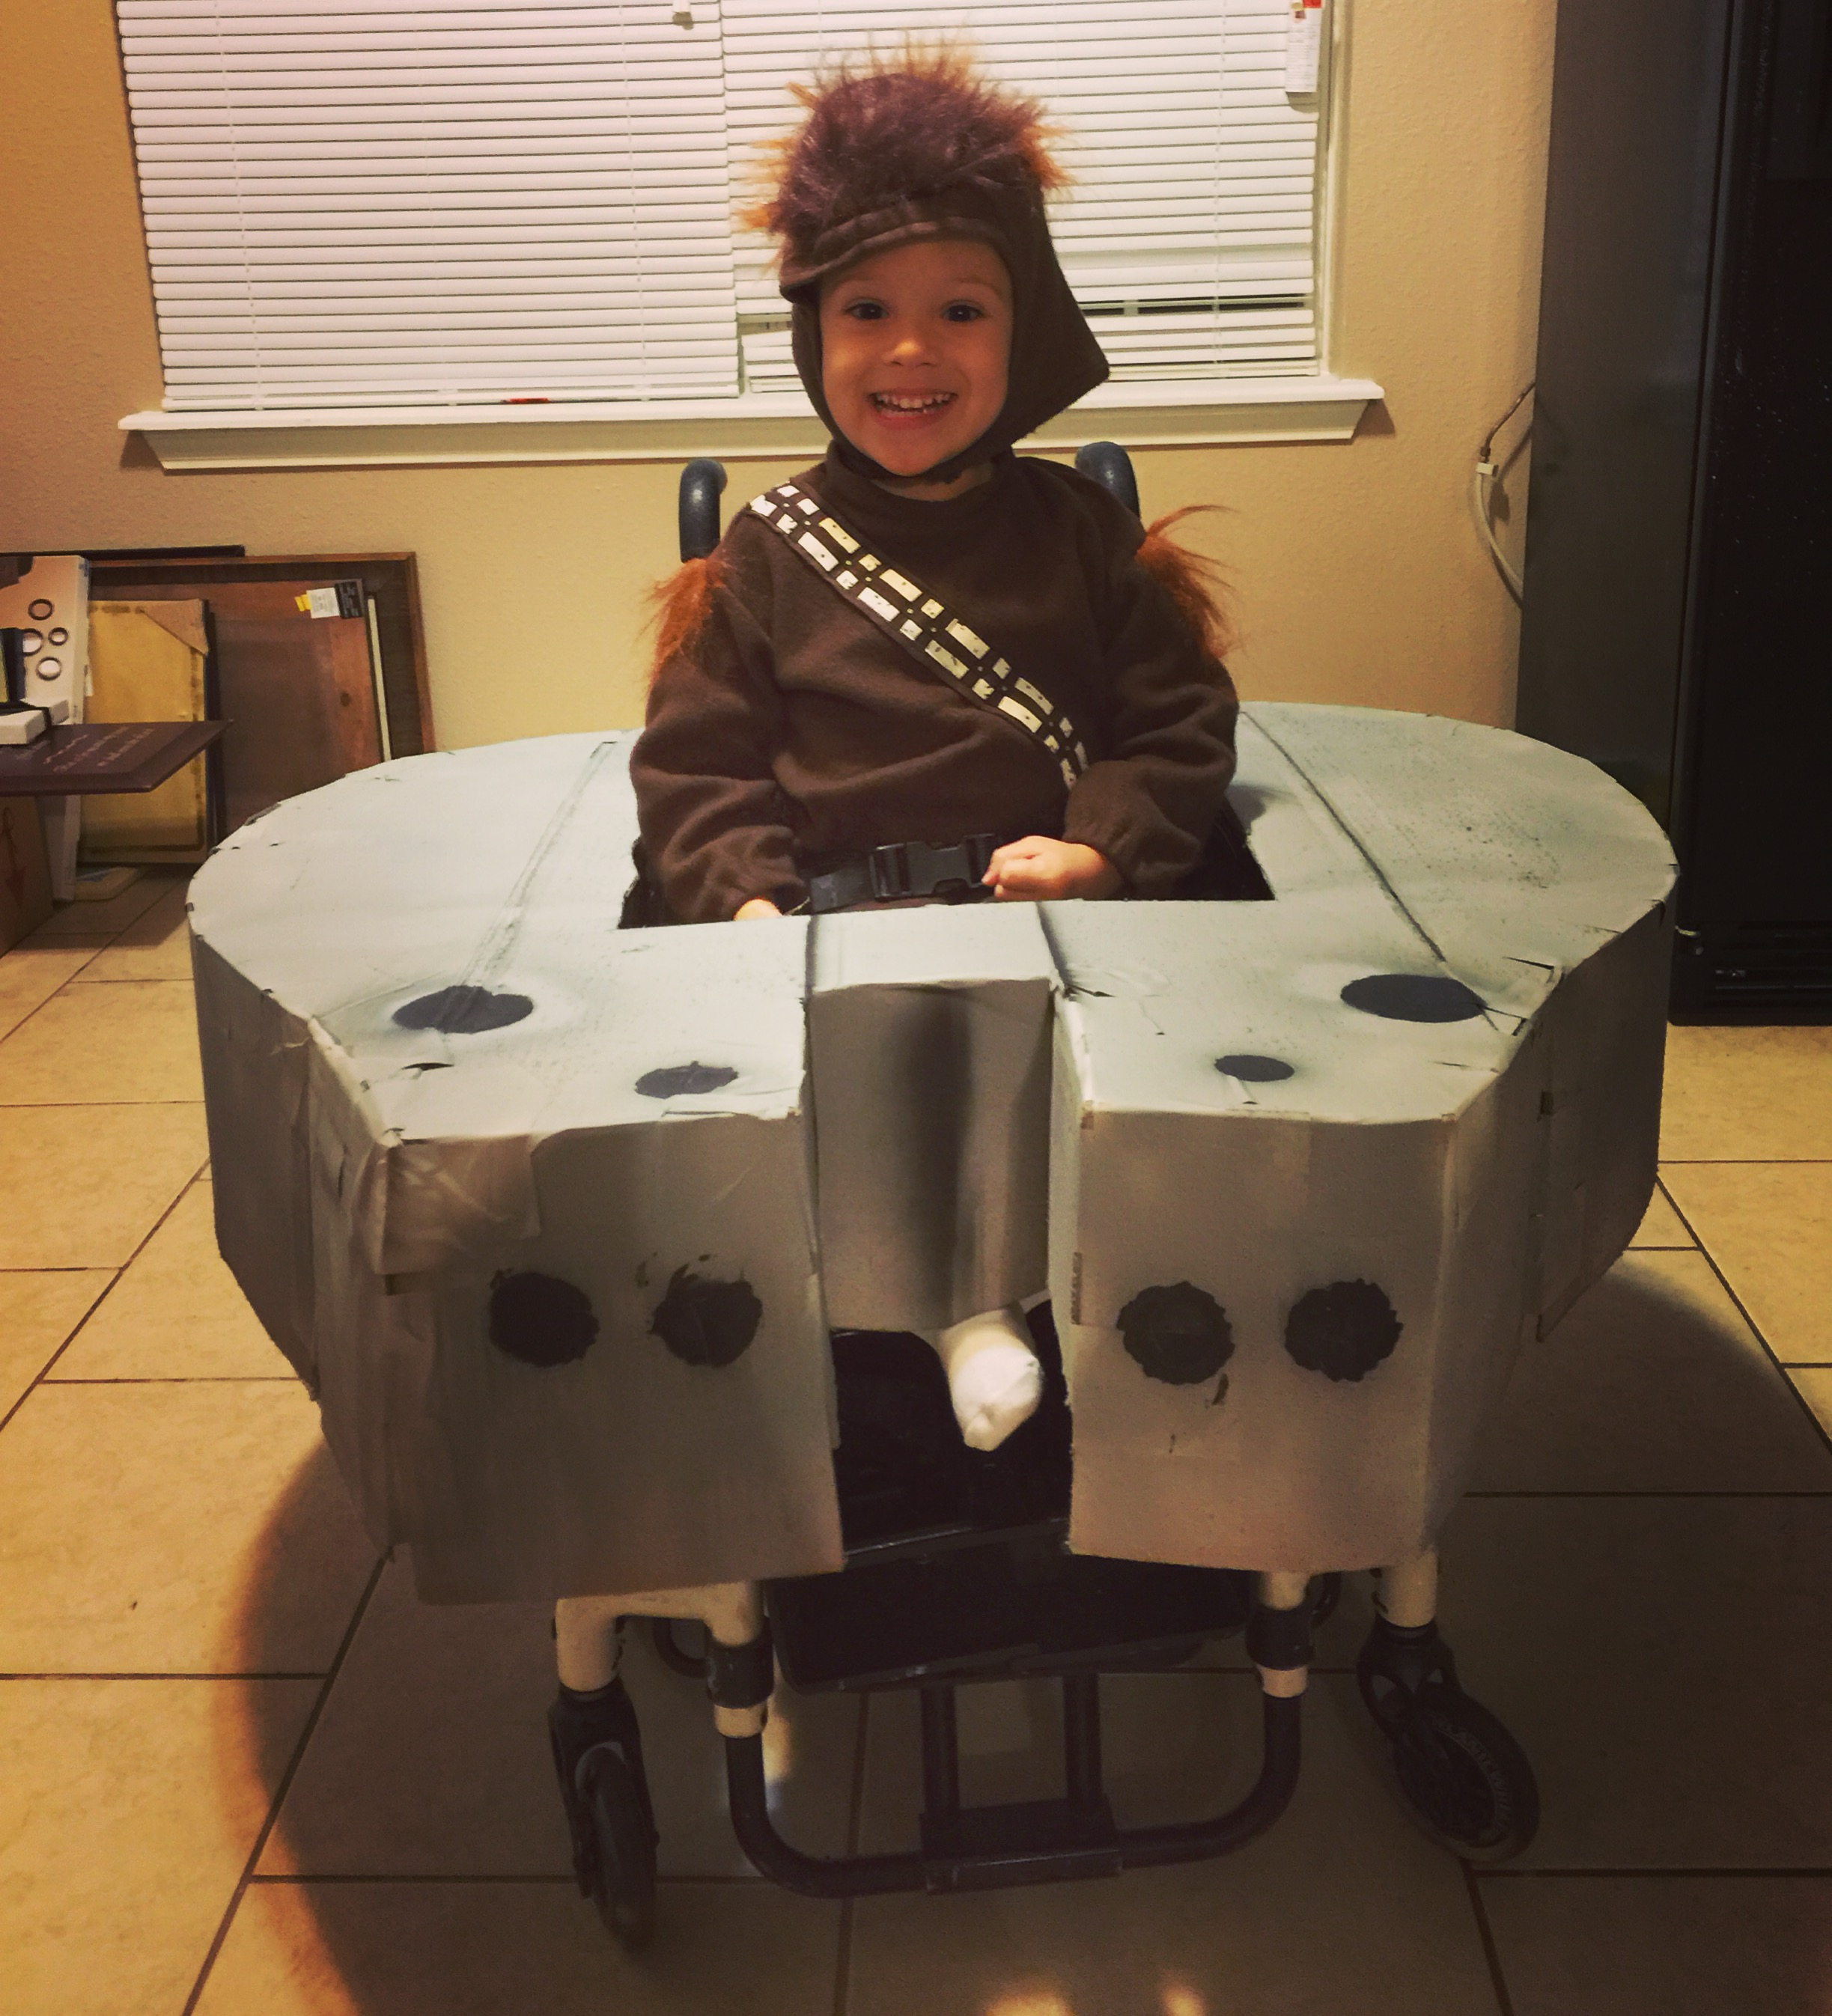 Chandlor Dressed Up As Chewbacca